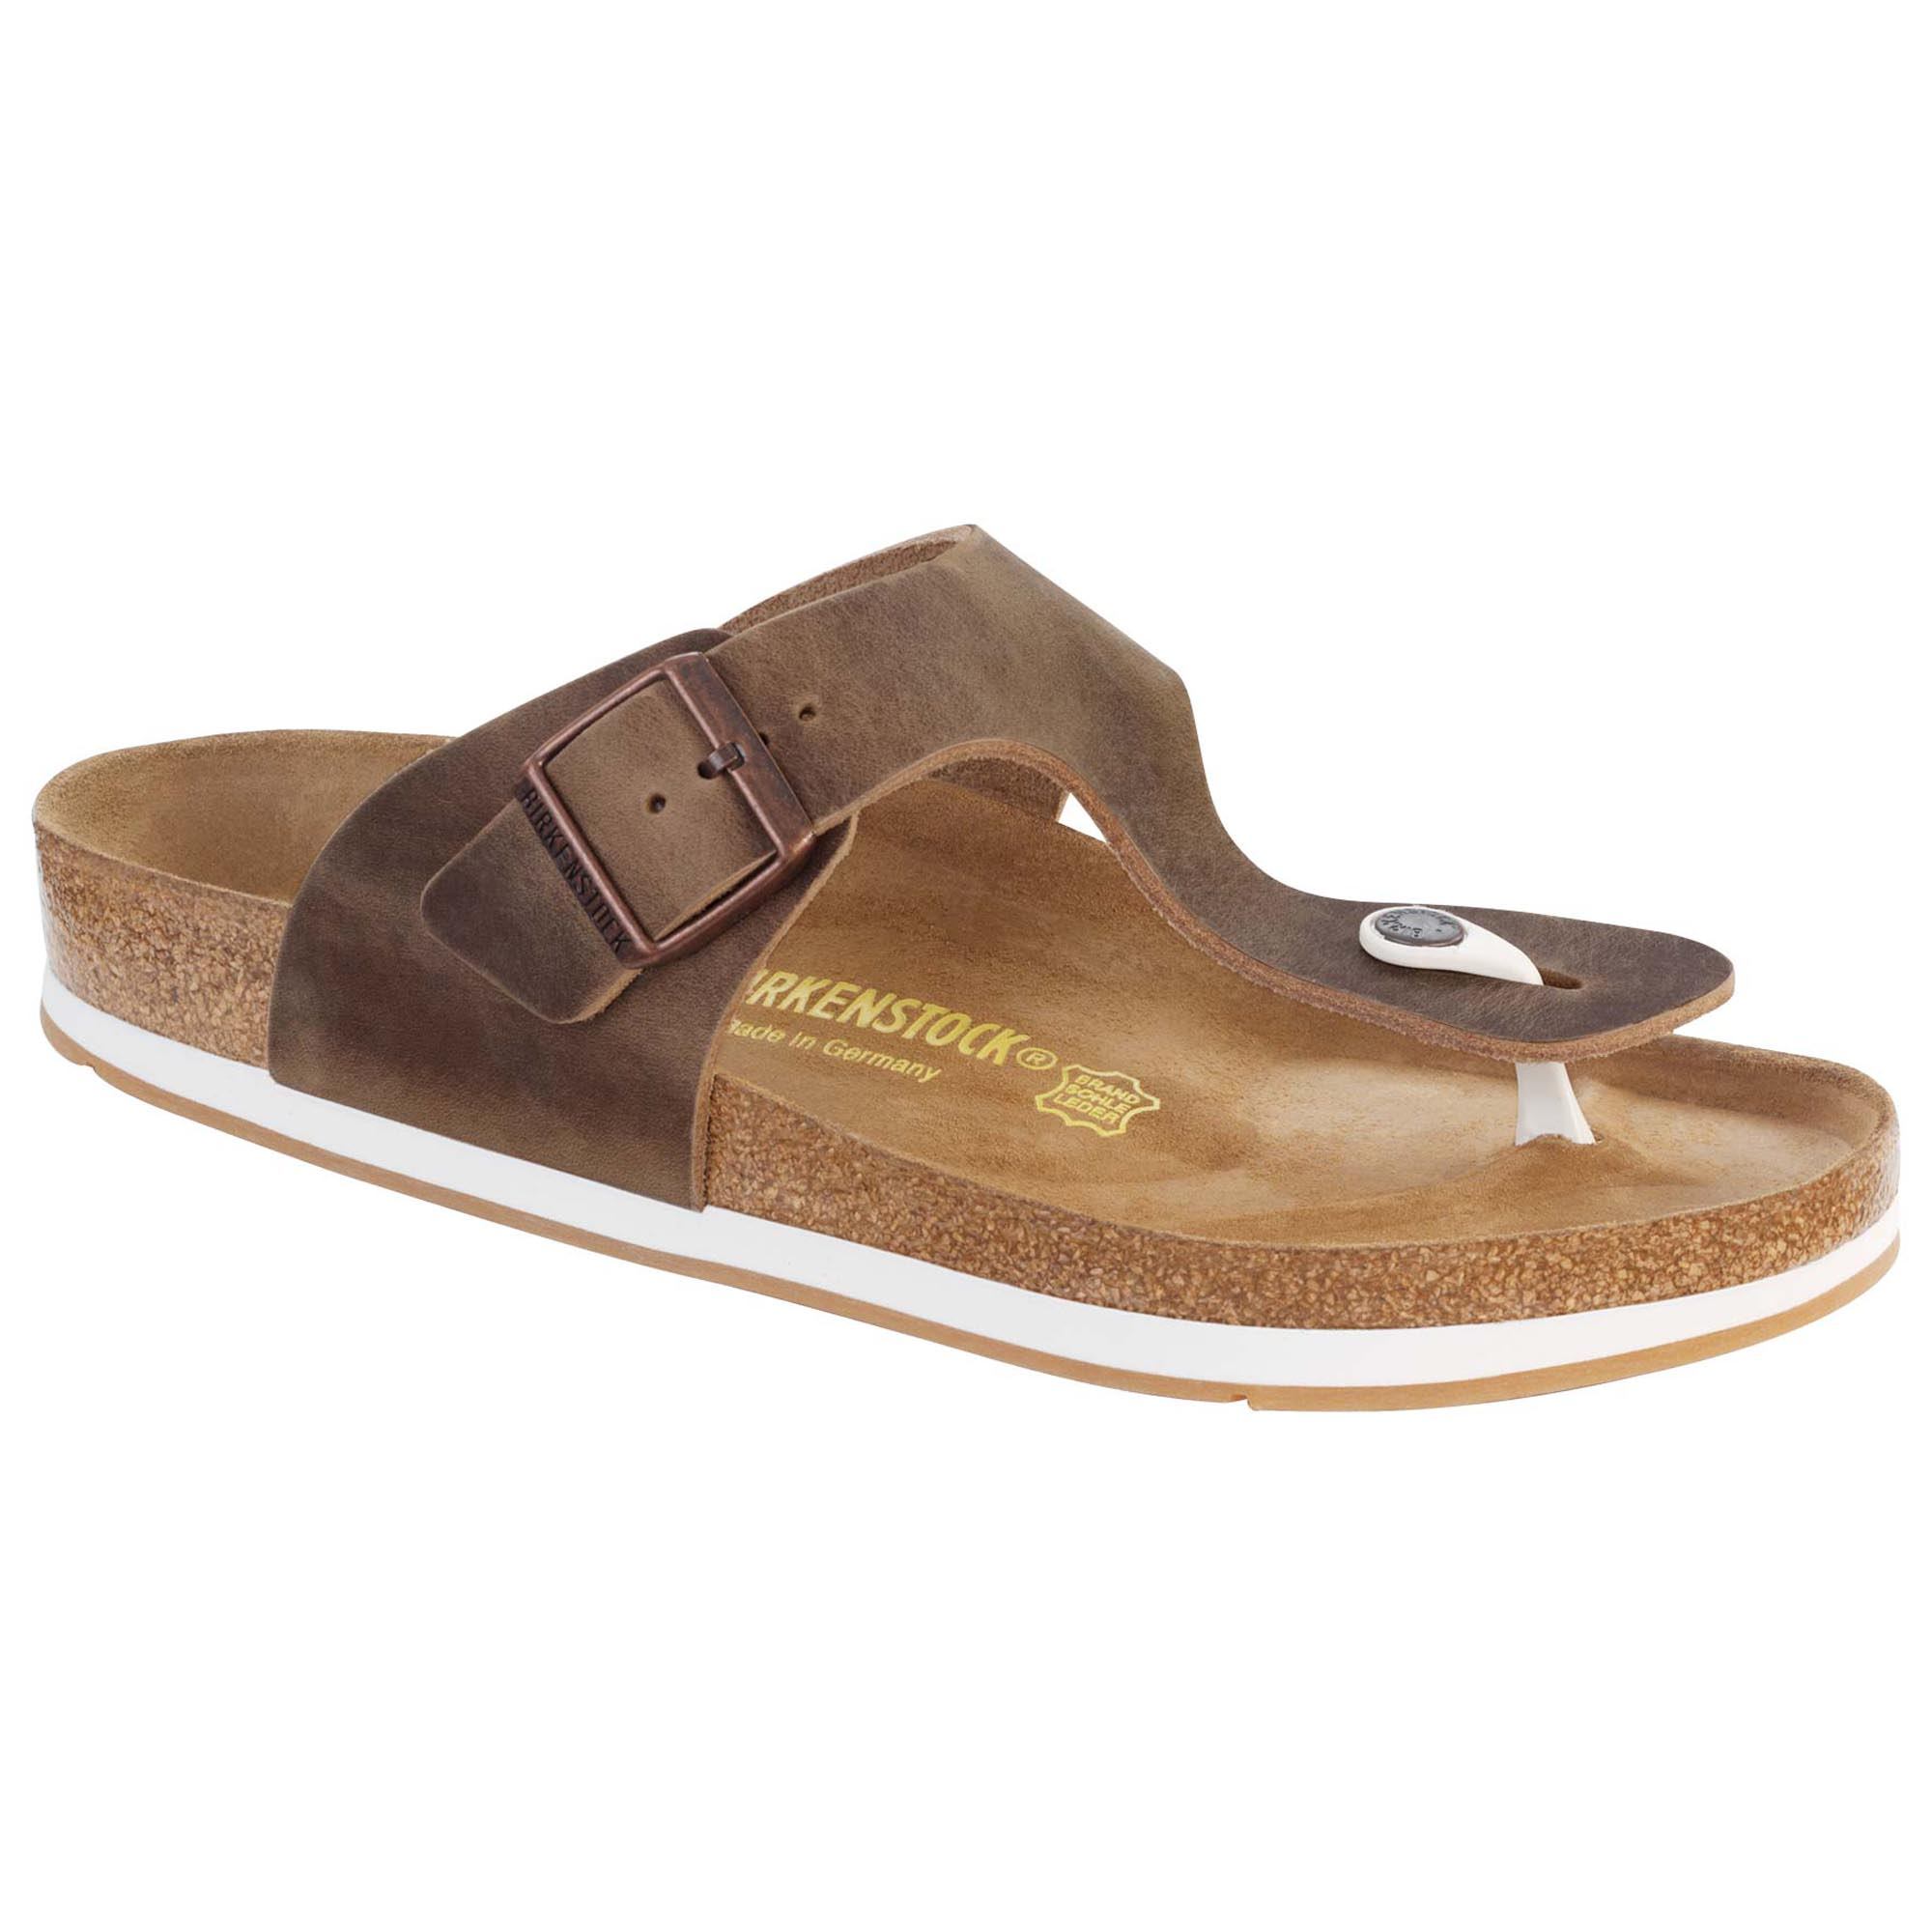 816d1b400d8 Ramses Oiled Leather Tobacco Brown